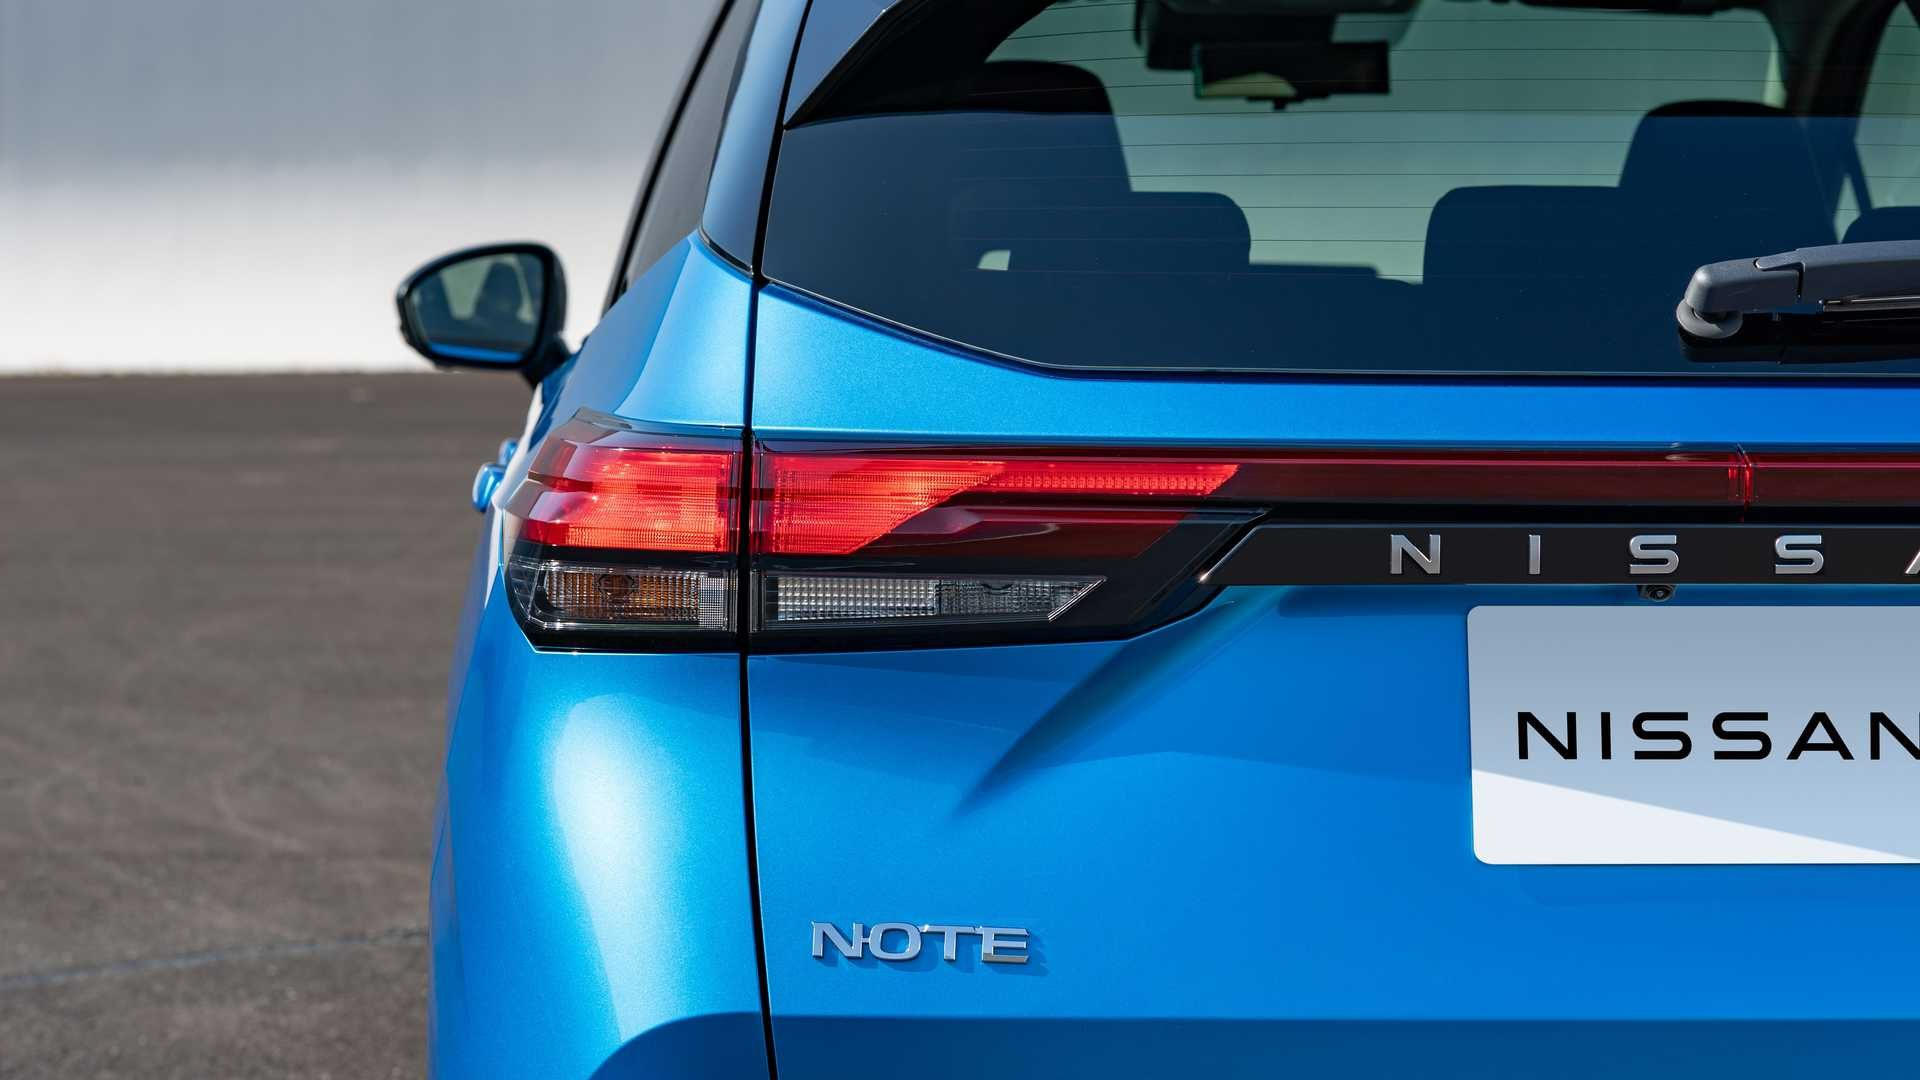 2021-nissan-note (9)